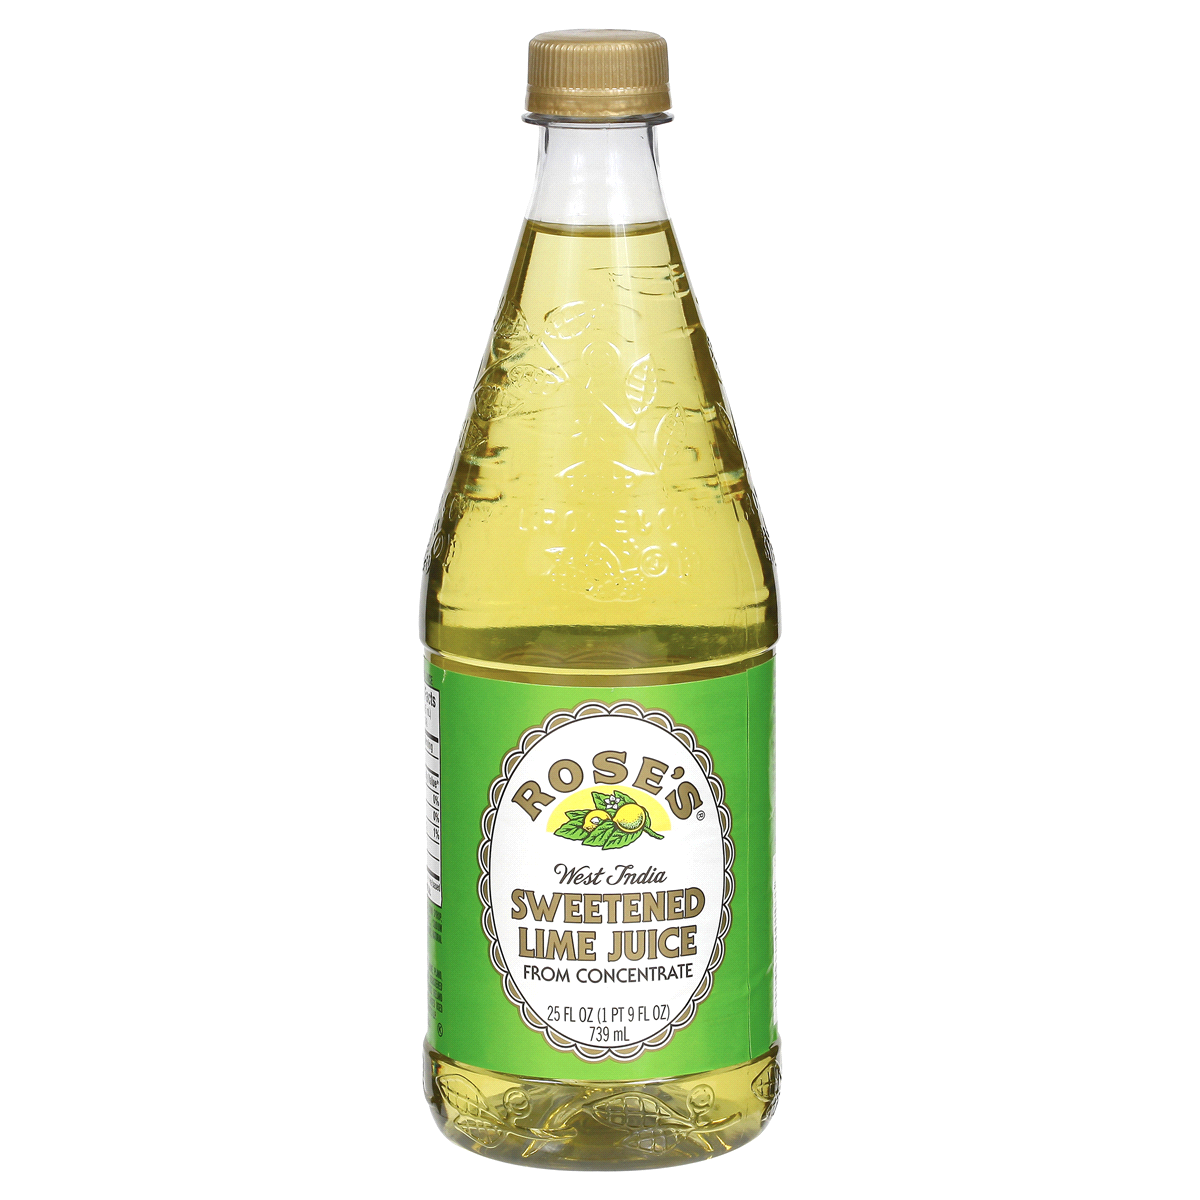 Roses Lime Juice 25 Oz.